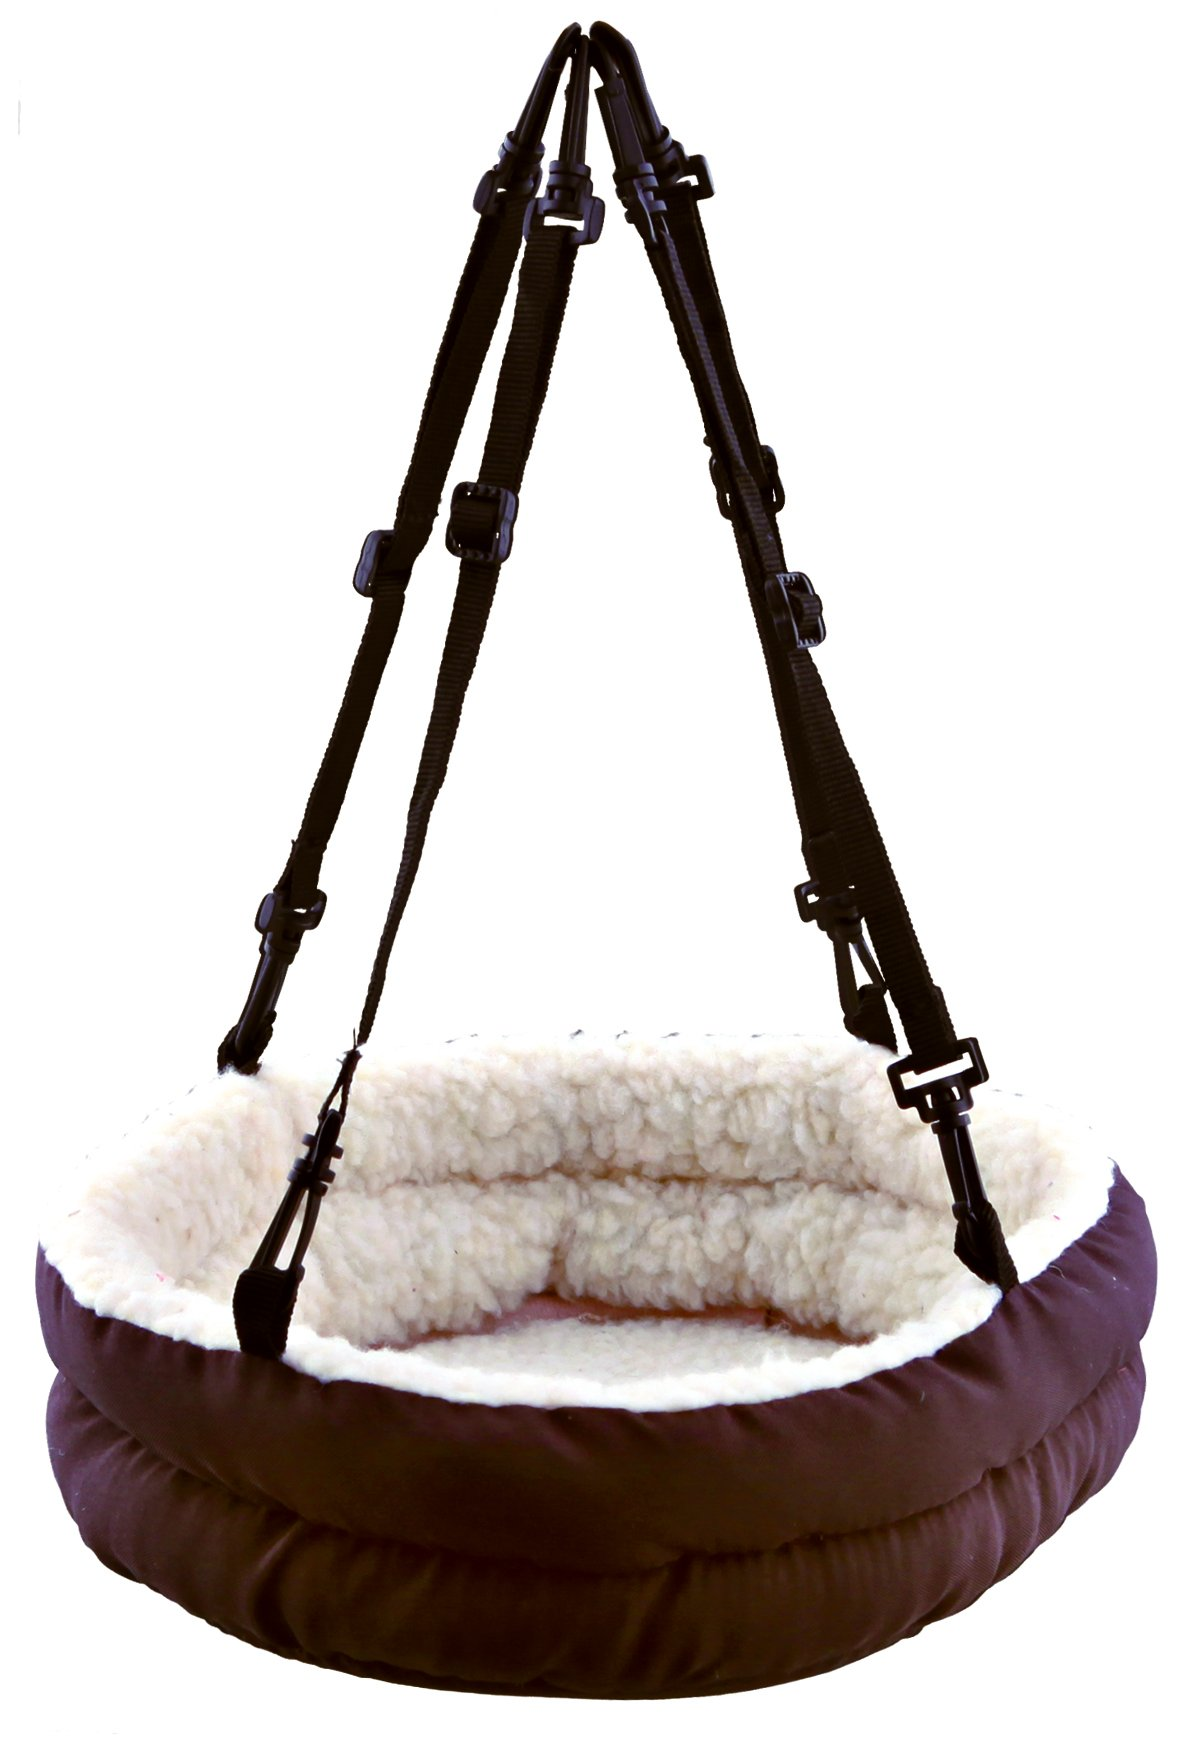 Trixie Pet Products 62705 Cuddly Bed to Hang for Small Animals, Various, 30 x 8 x 25cm